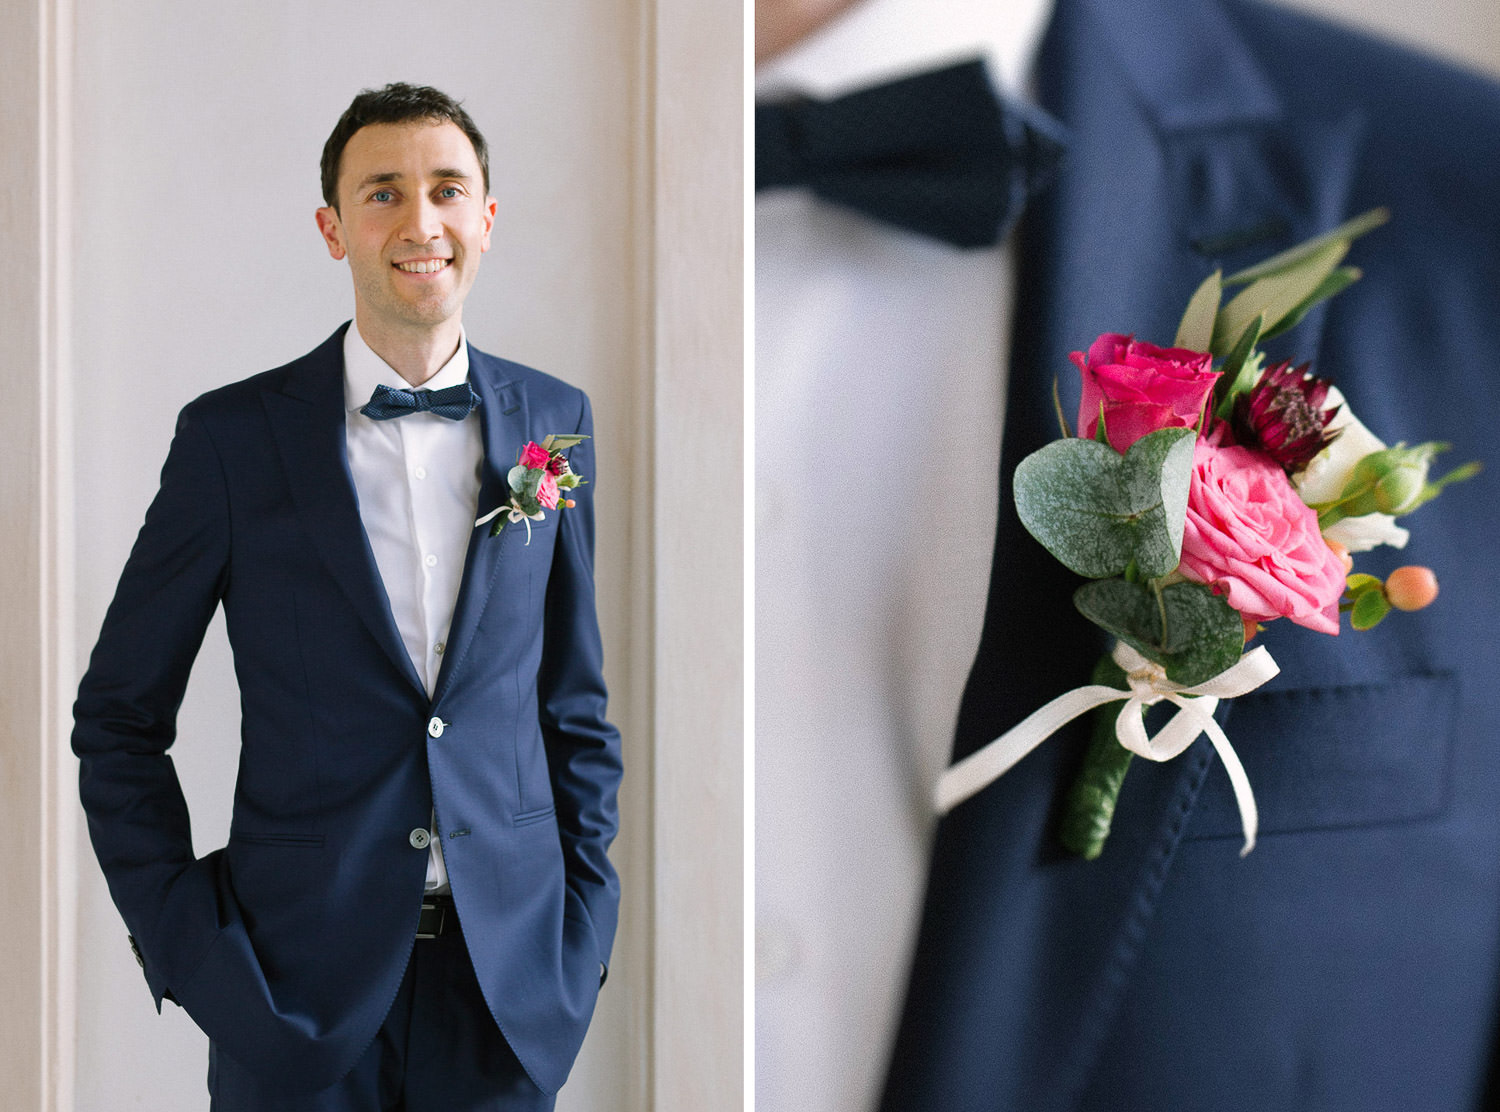 Groom portraits and elegant blue suit details